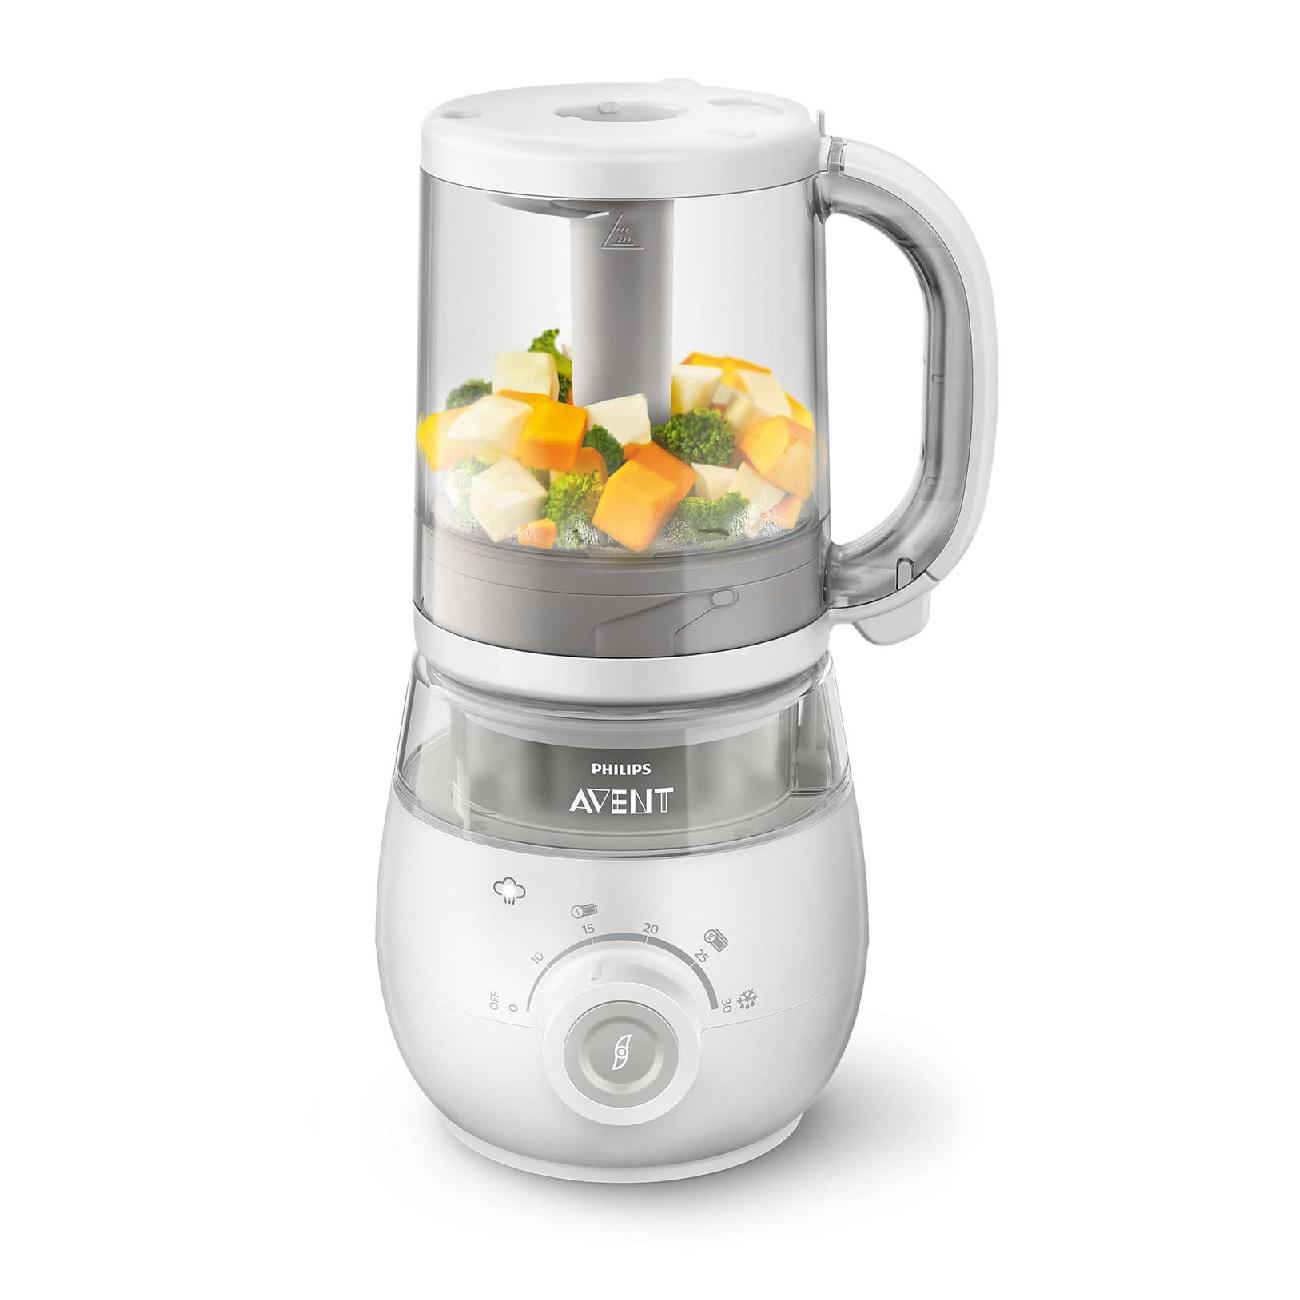 PHILIPS AVENT 4 In 1 Healthy Steam Mealmake image on snachetto.com